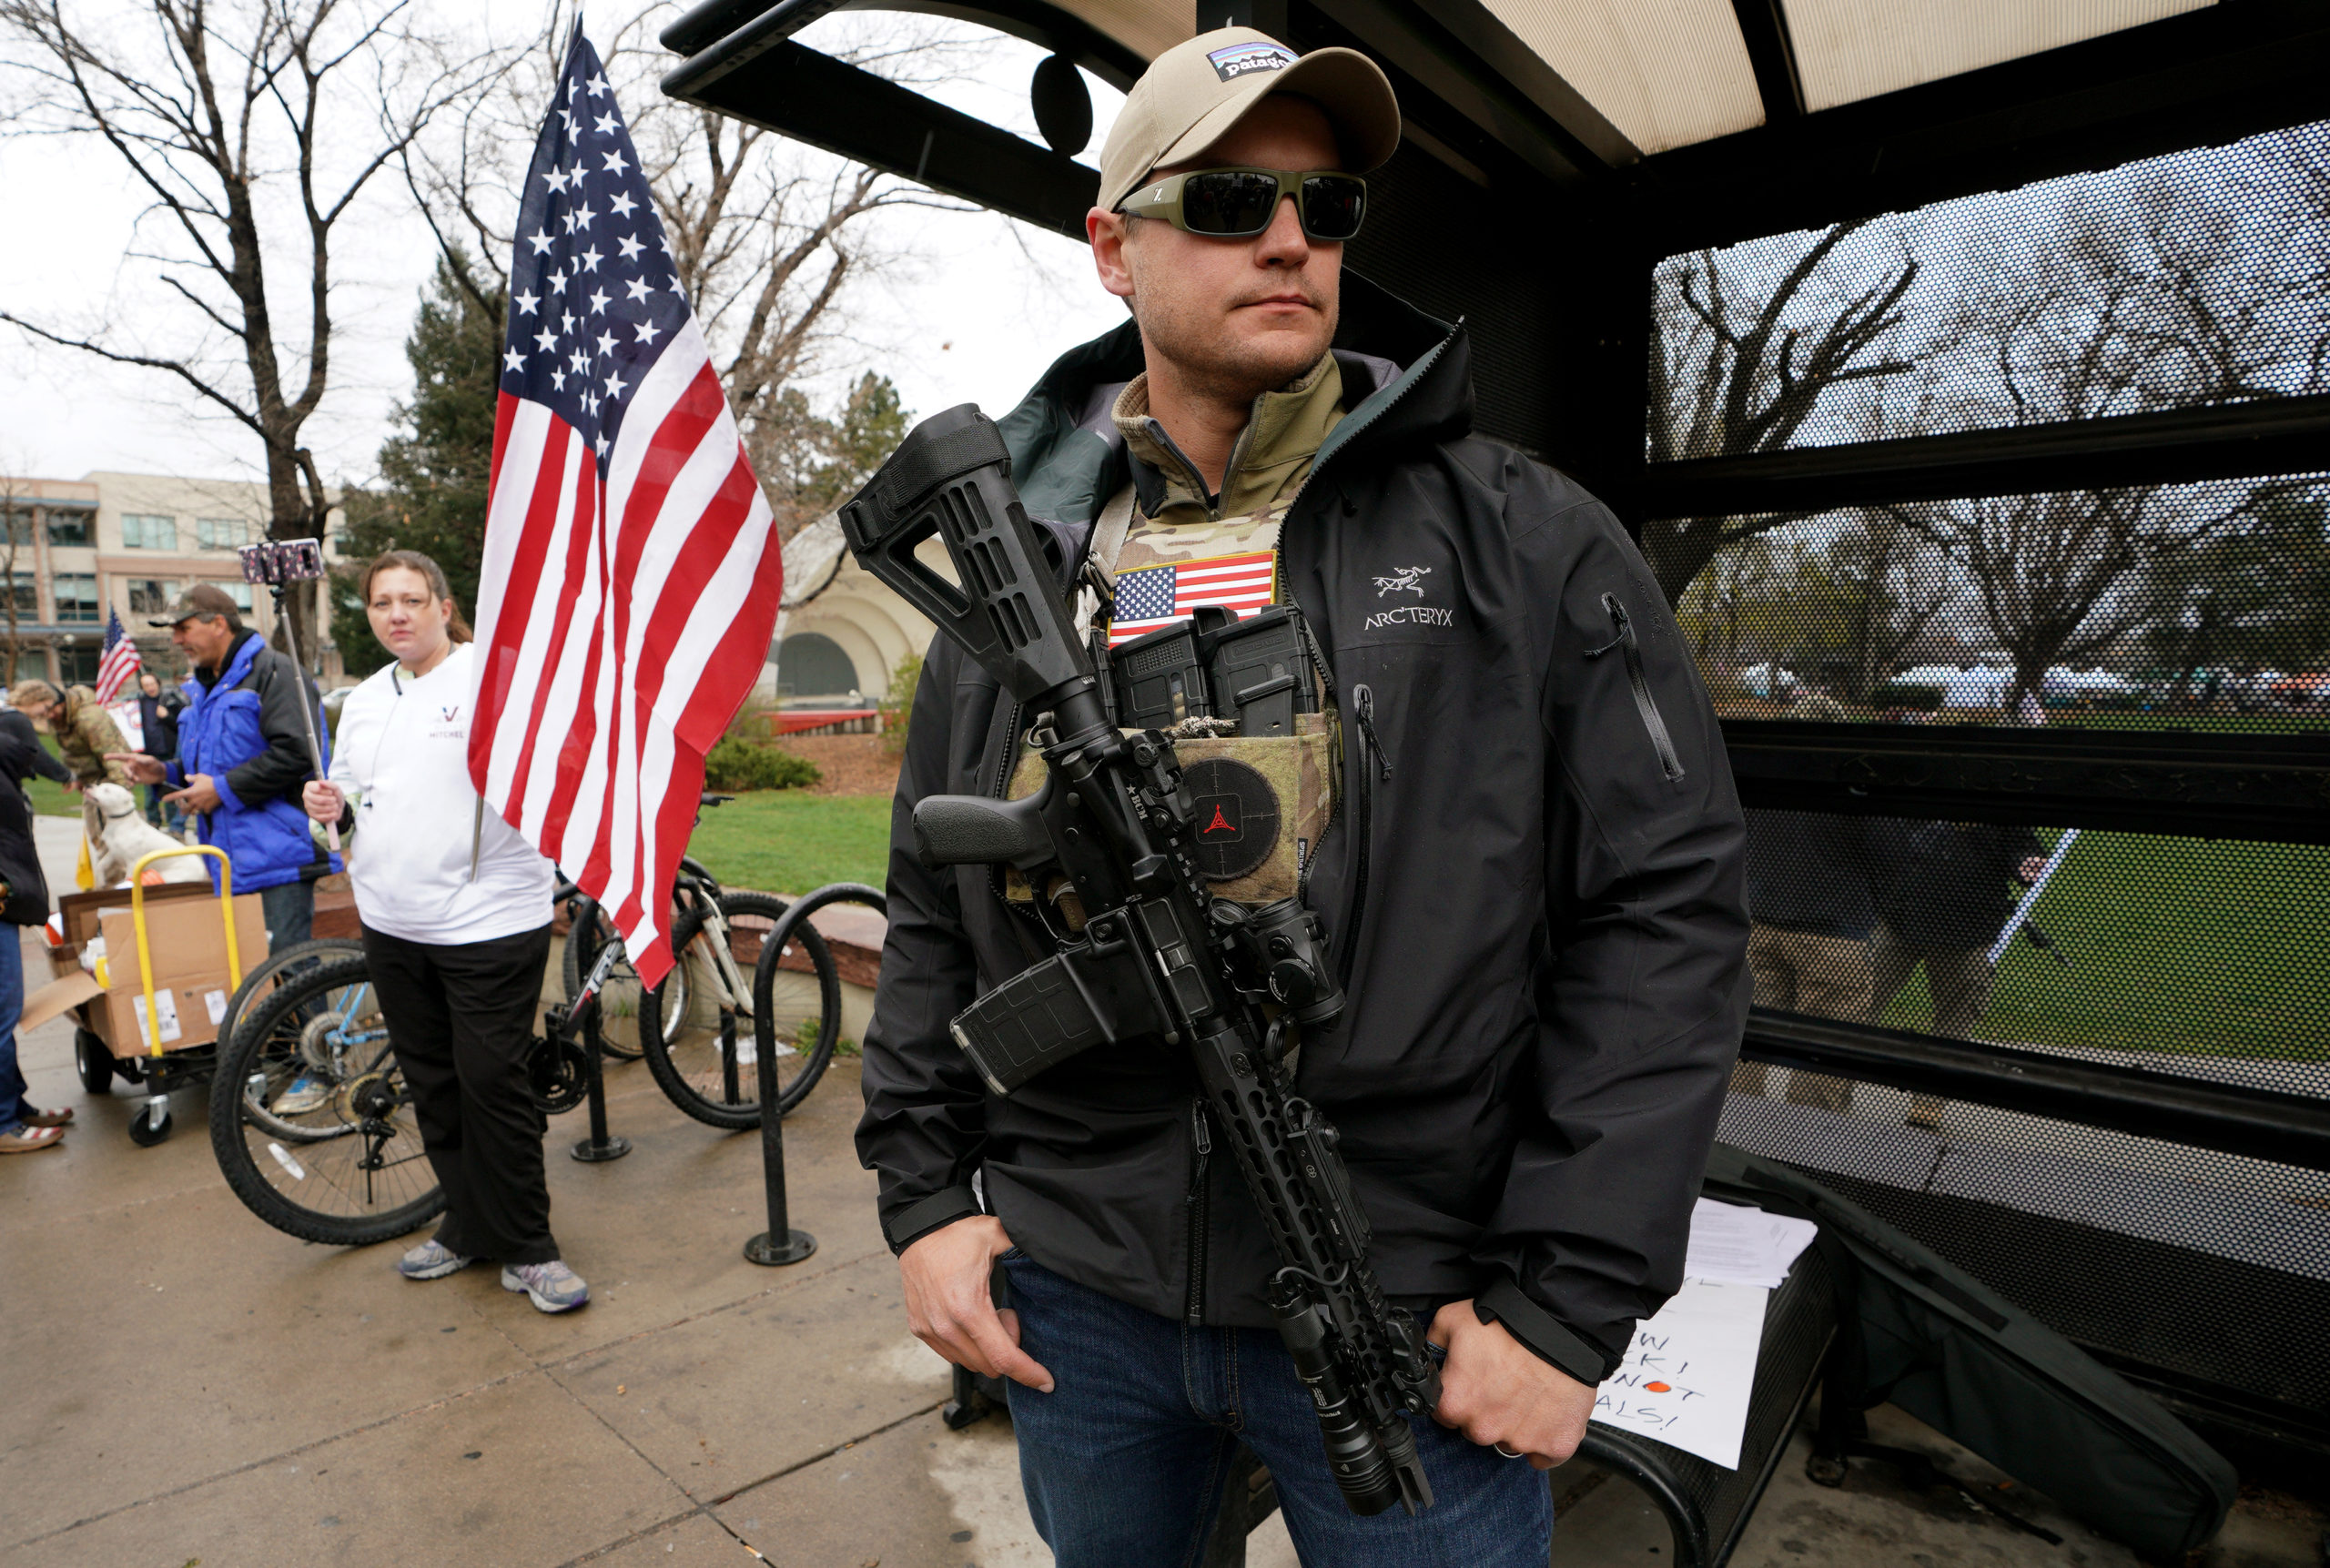 BOULDER, CO - APRIL 21: Marty Combs openly carries his AR-15 pistol at a pro gun rally on April 21, 2018 in Boulder, Colorado. The city of Boulder is considering enacting an ordinance that will ban the sale and possession of assault weapons in the city. (Rick T. Wilking/Getty Images)